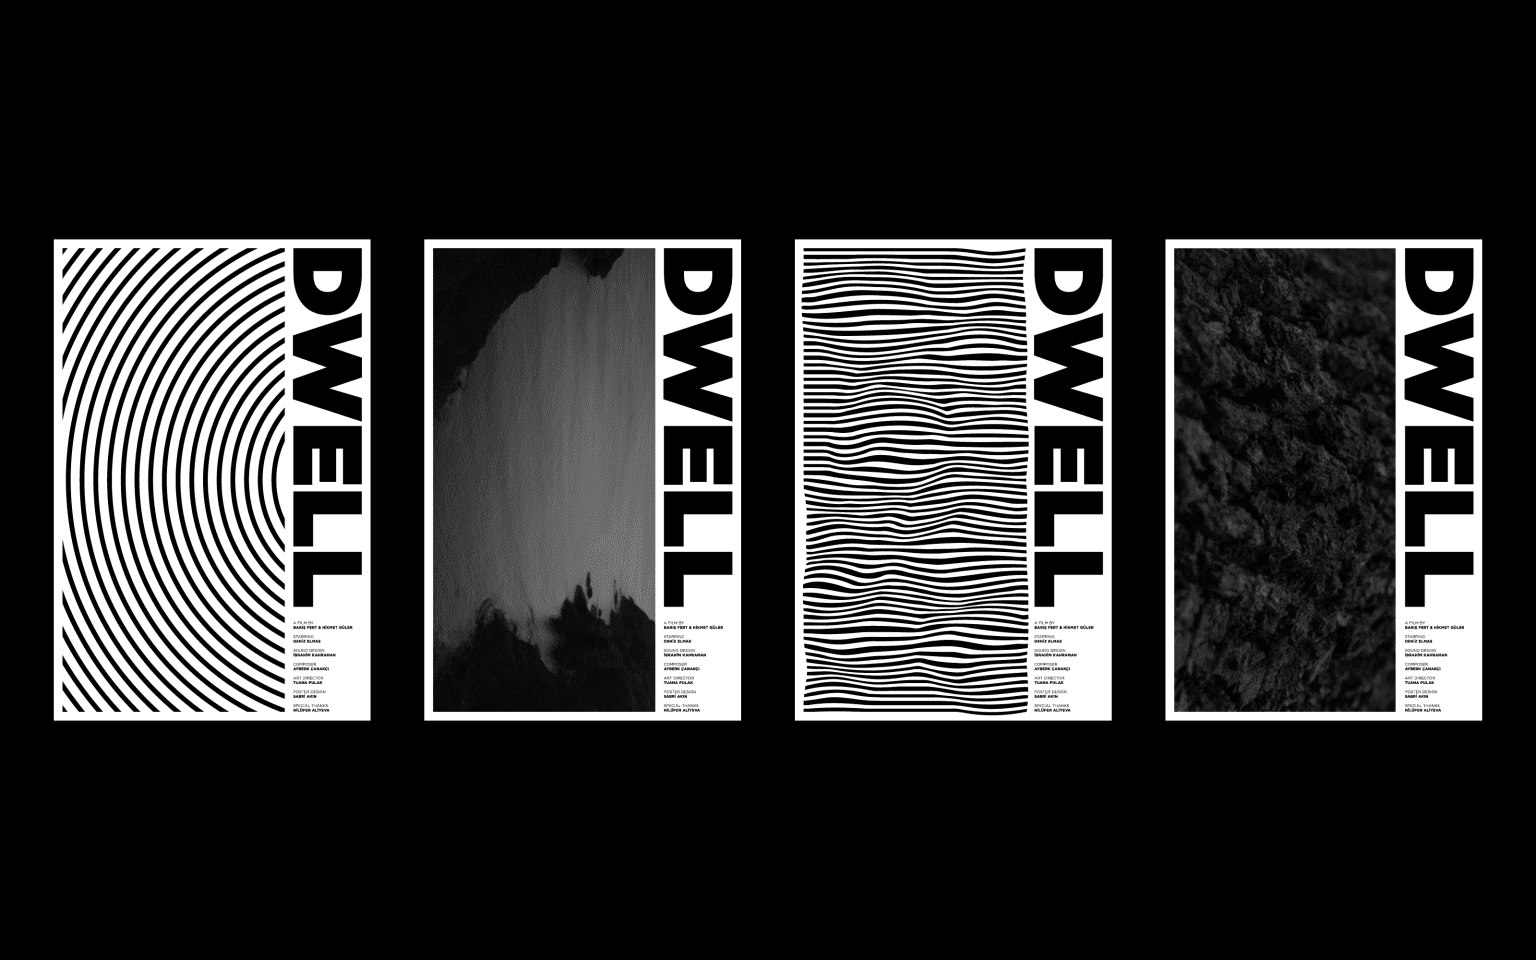 Poster Series for Dwell